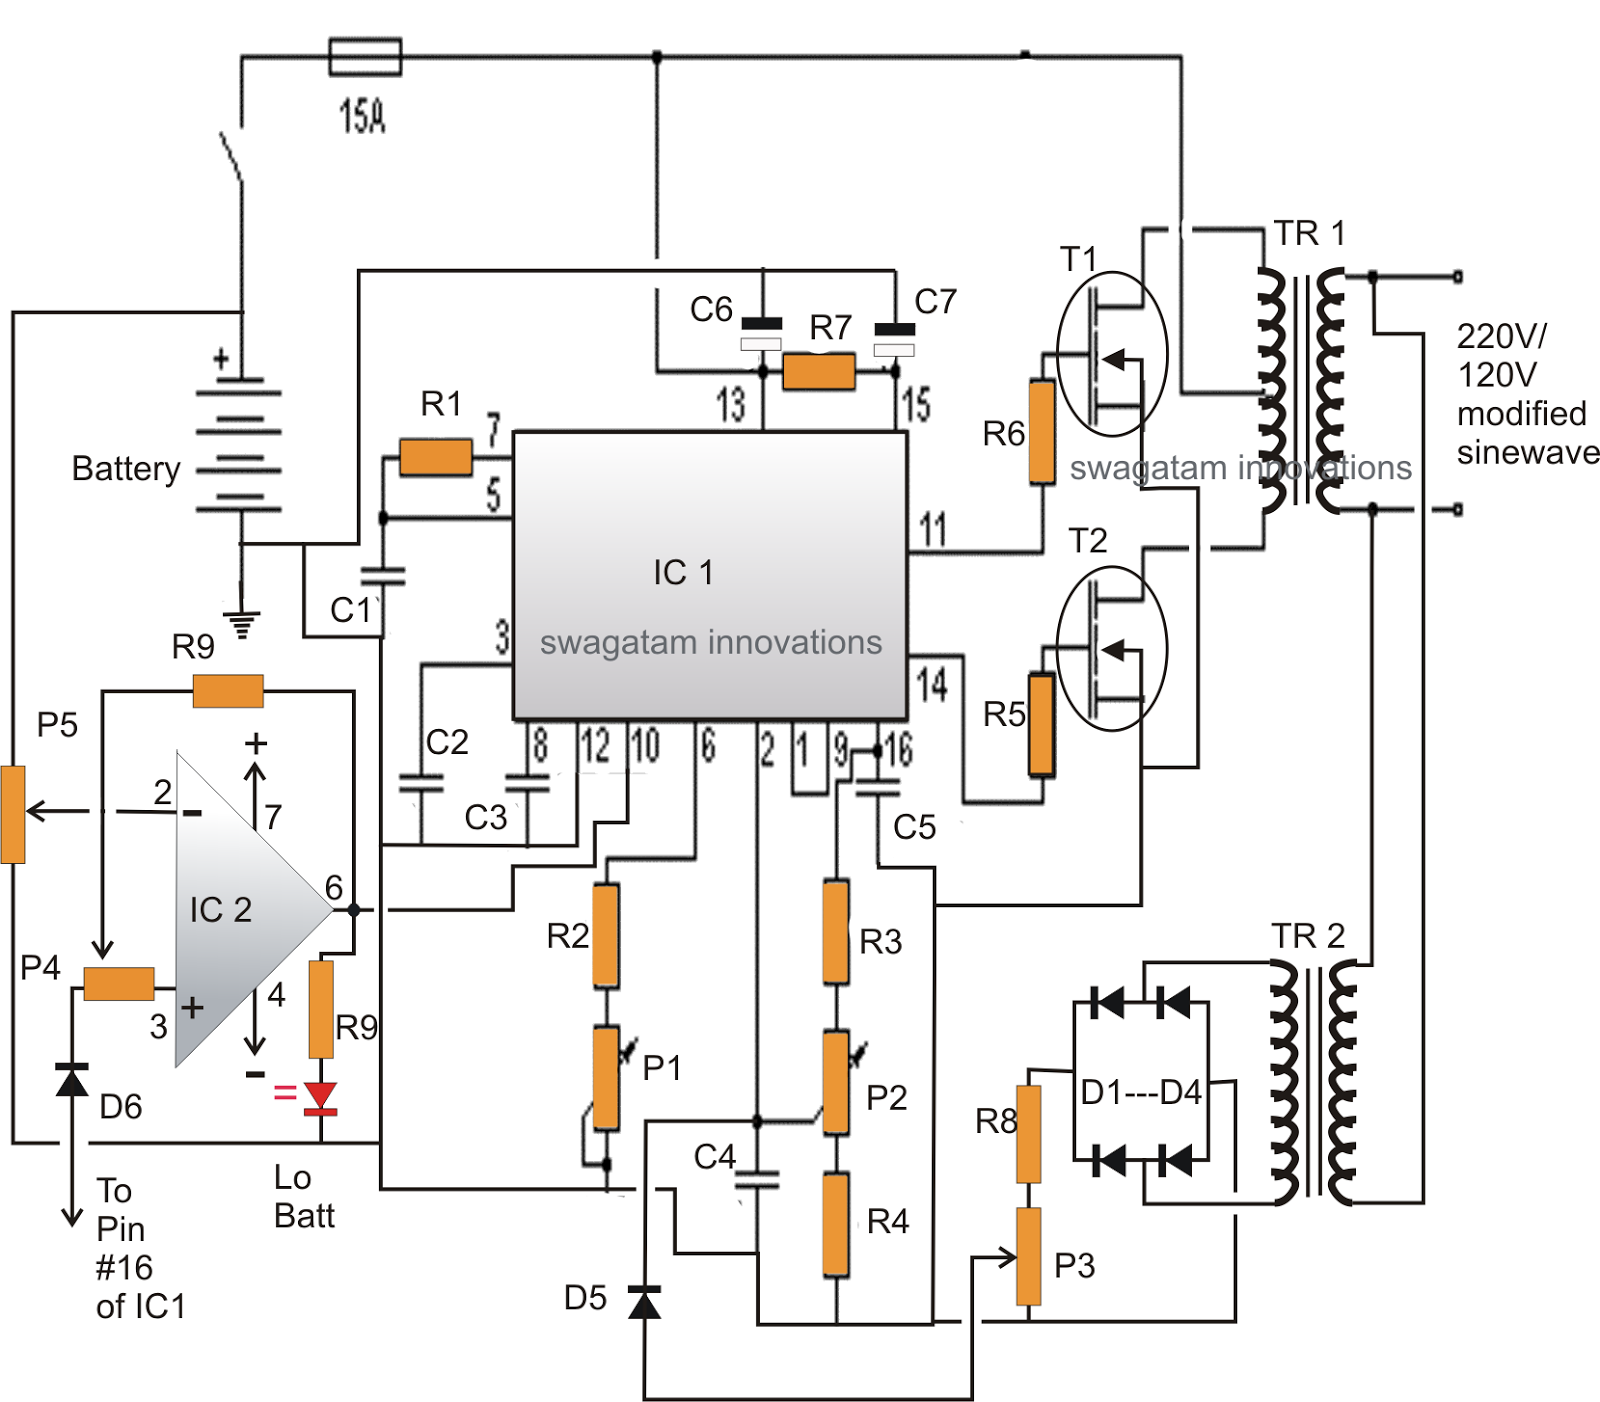 Tig Circuit Diagram Residential Electrical Symbols Hello And Help Sip Topmig 195 Mig Welding Forum Modified Sine Wave Inverter Using Ic 3525 With Regulated Output Low Battery Protection Welder